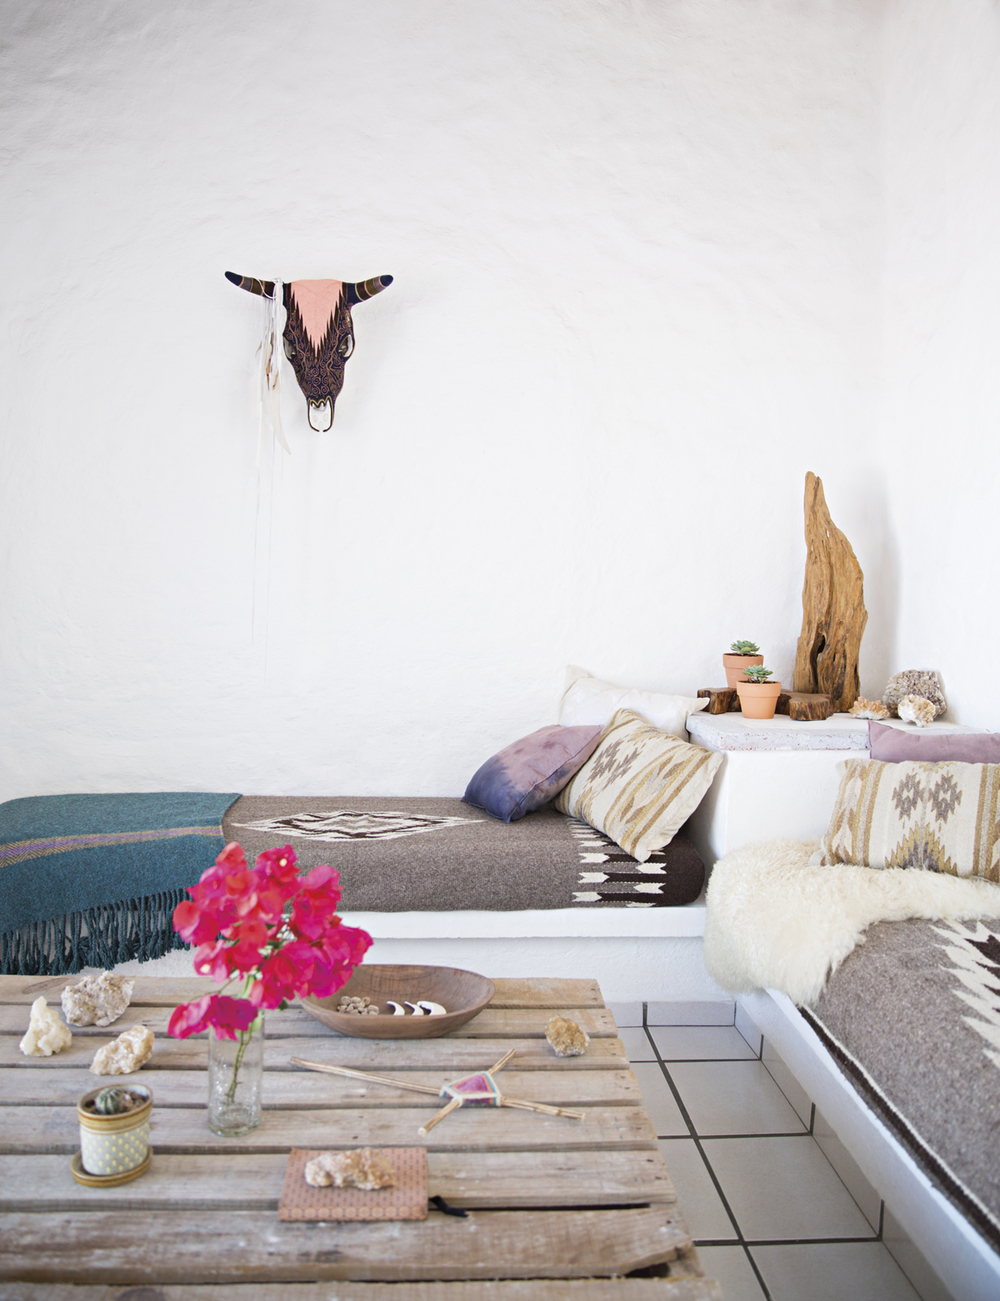 boho-chic-home-with-mexican-decor-touches-3